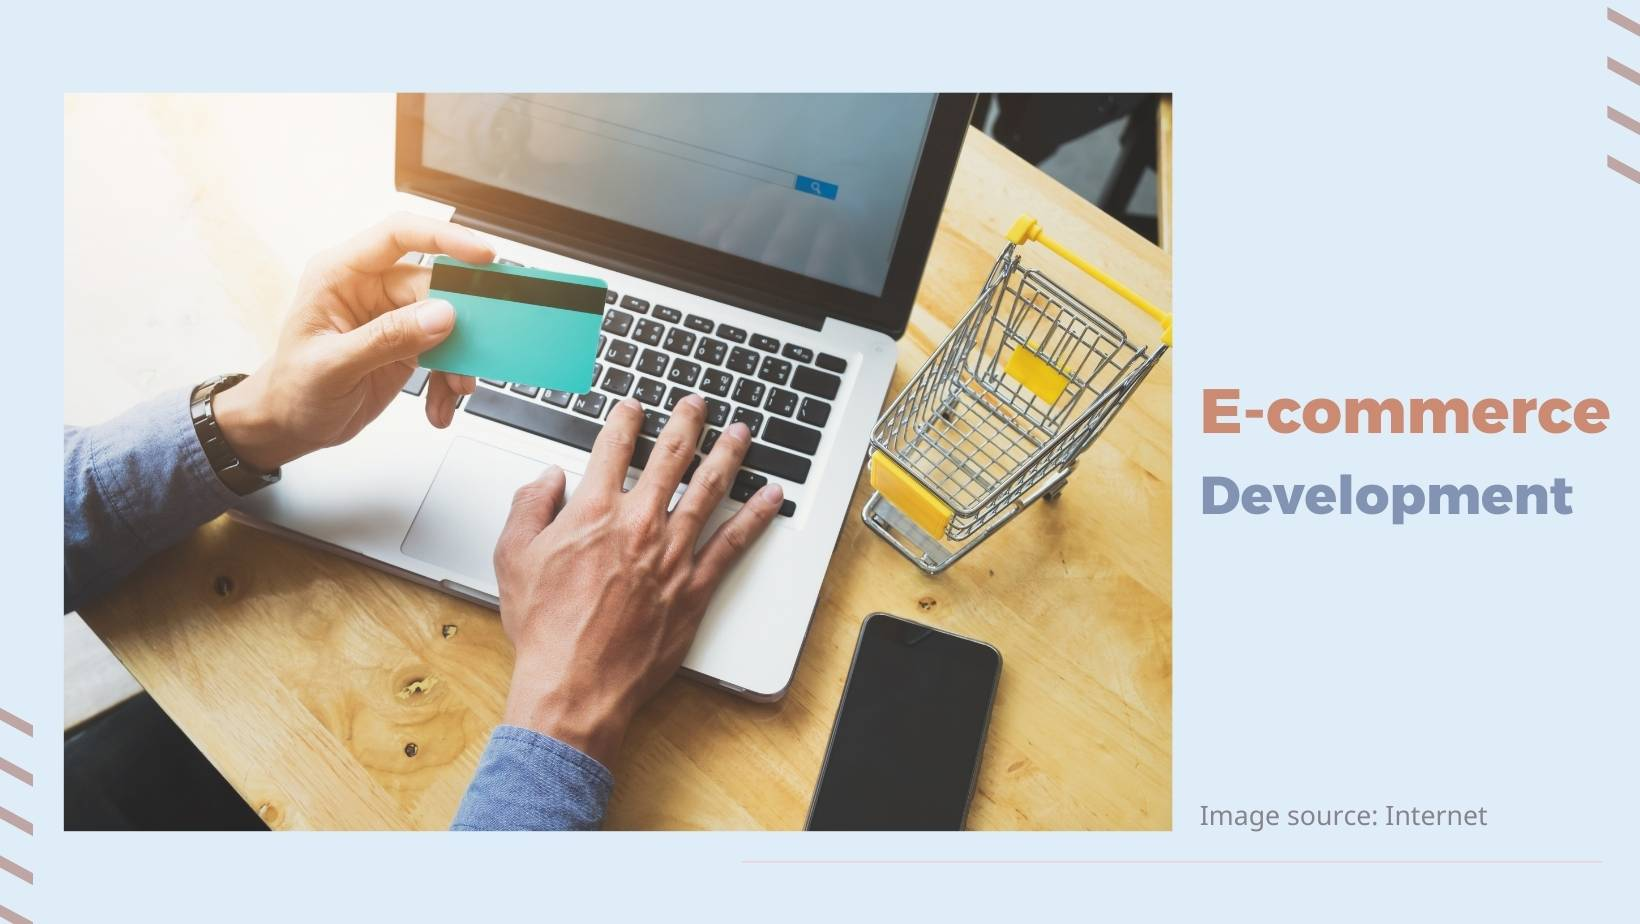 e-commerce development in the paper packaging industry